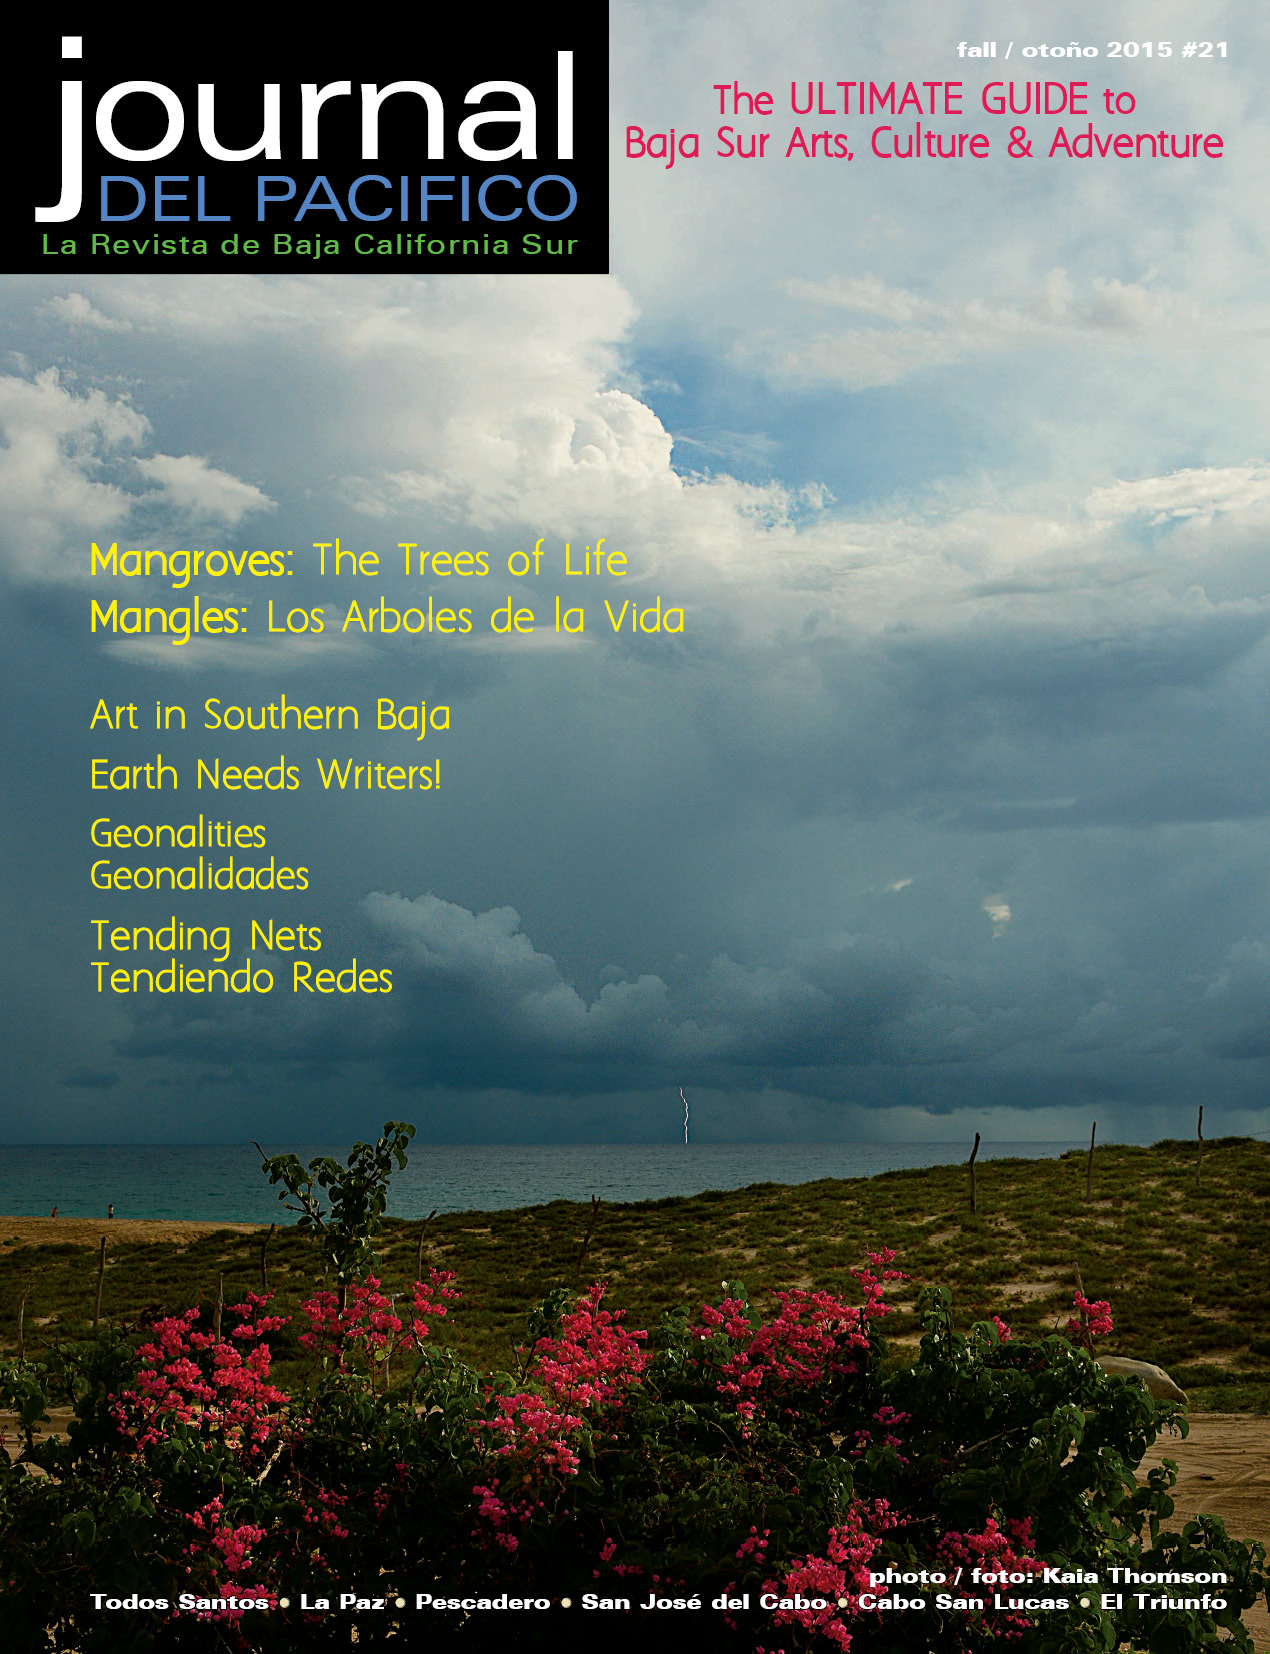 Fall 2015 Issue of Journal del Pacifico